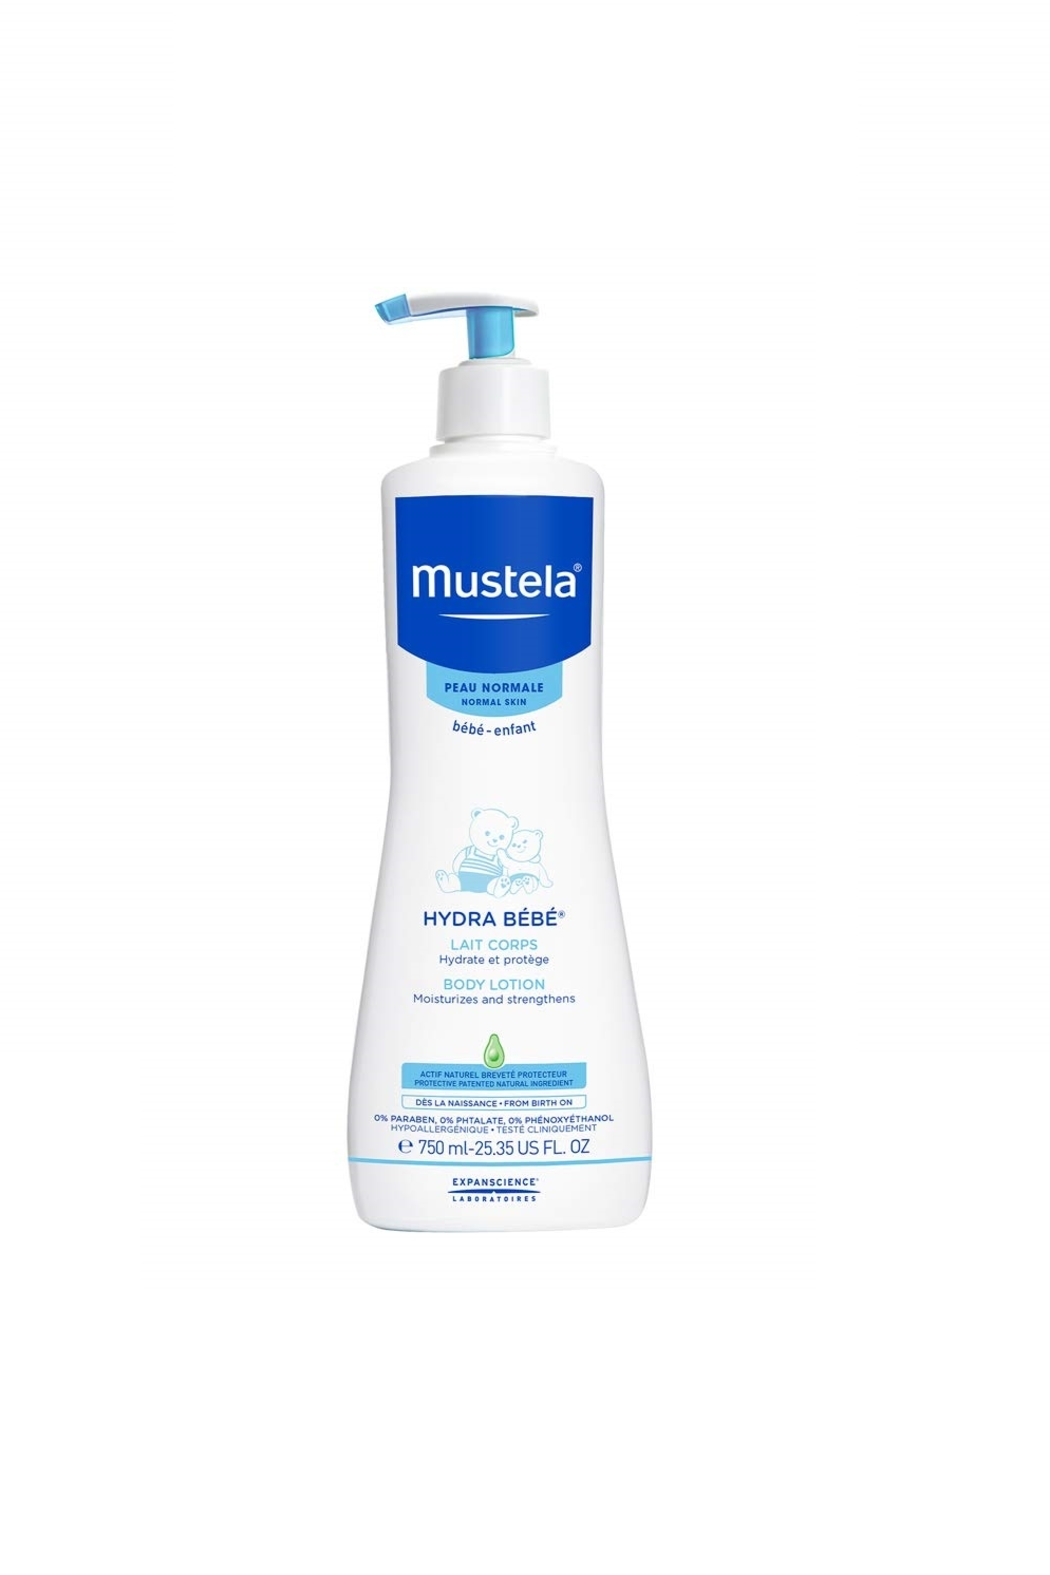 Mustela Hydra Bebe Body Lotion, Daily Moisturizing Baby Lotion For Normal Skin 25.35 Oz - Main Image